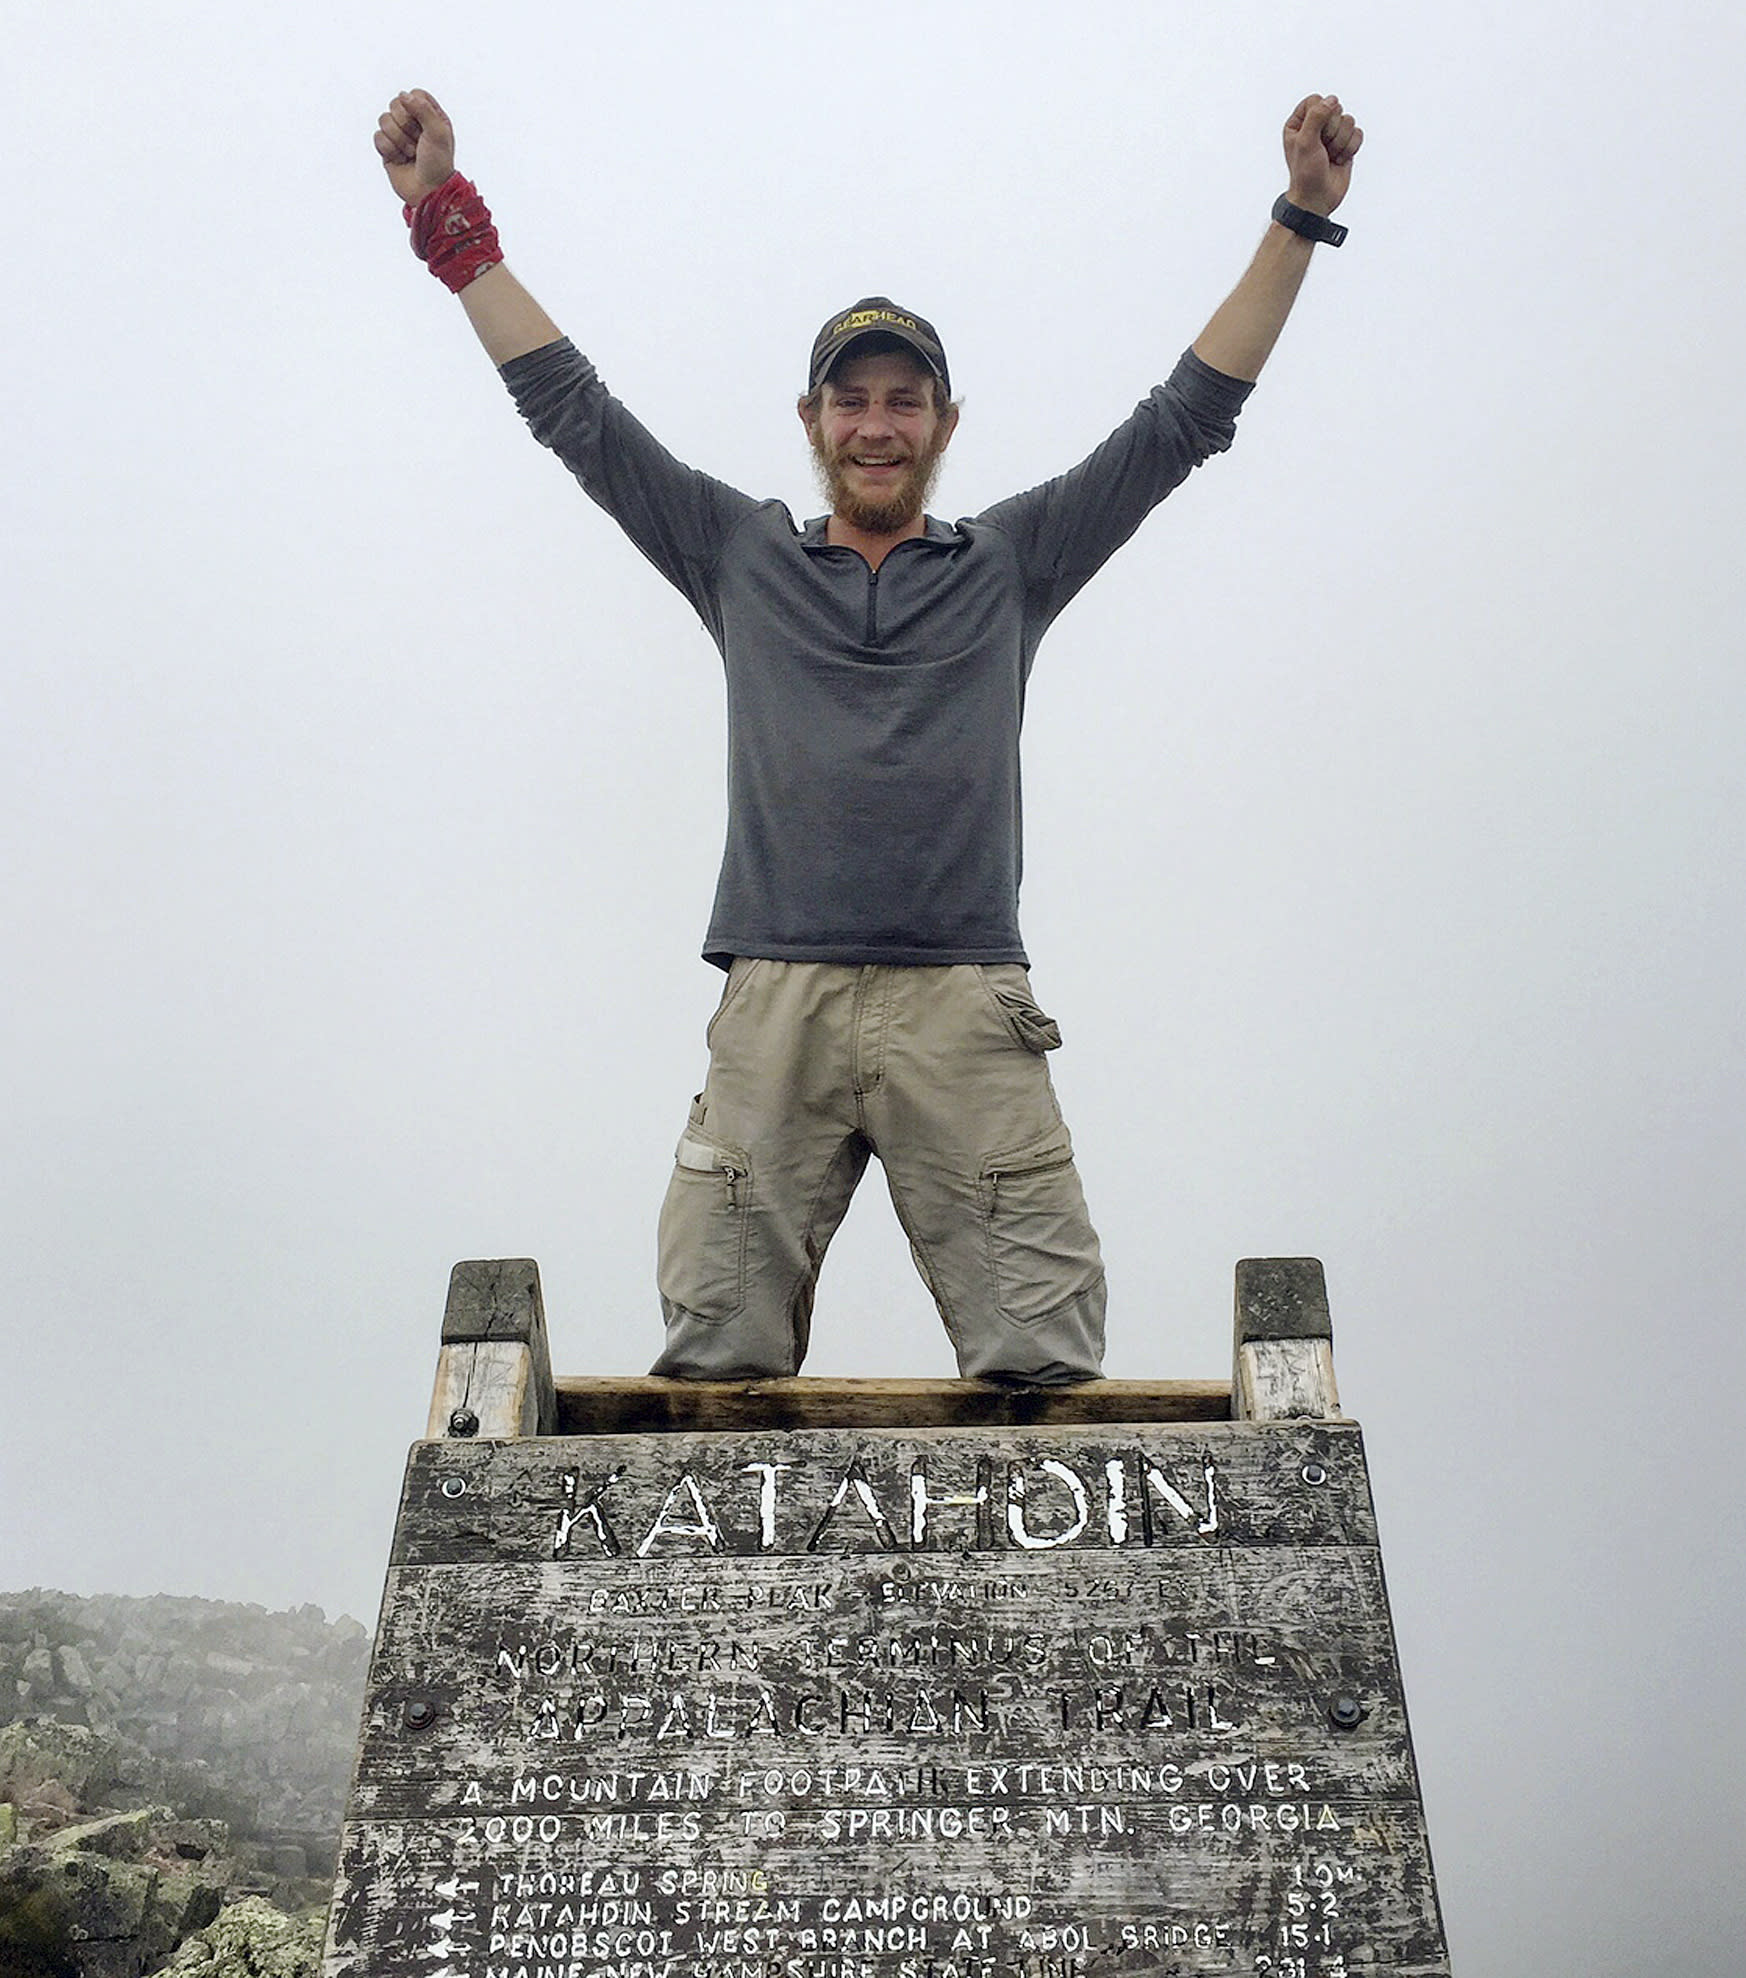 Hikers behaving badly: Appalachian Trail partying raises ire